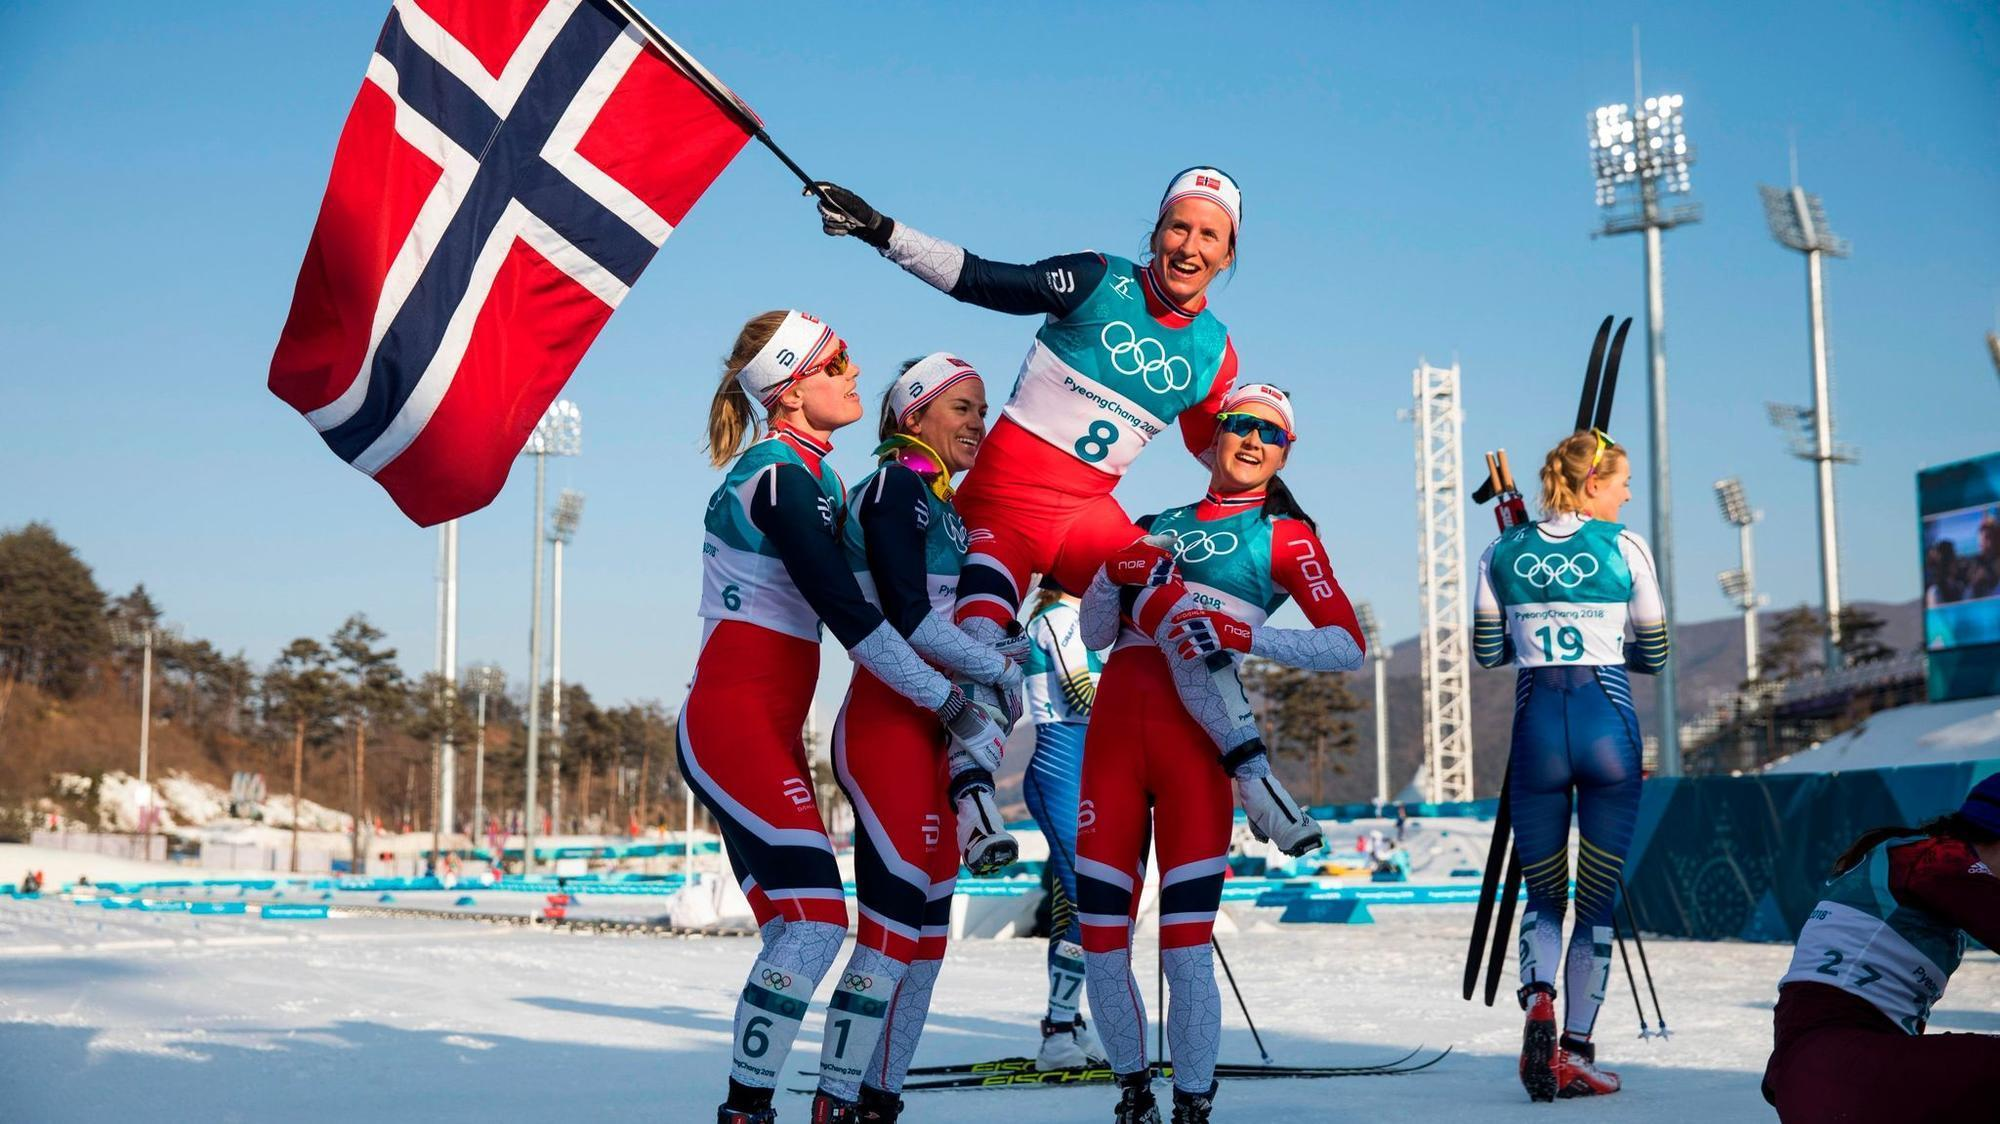 Marit Bjoergen Dominates In Last Olympic Race Wins 5th